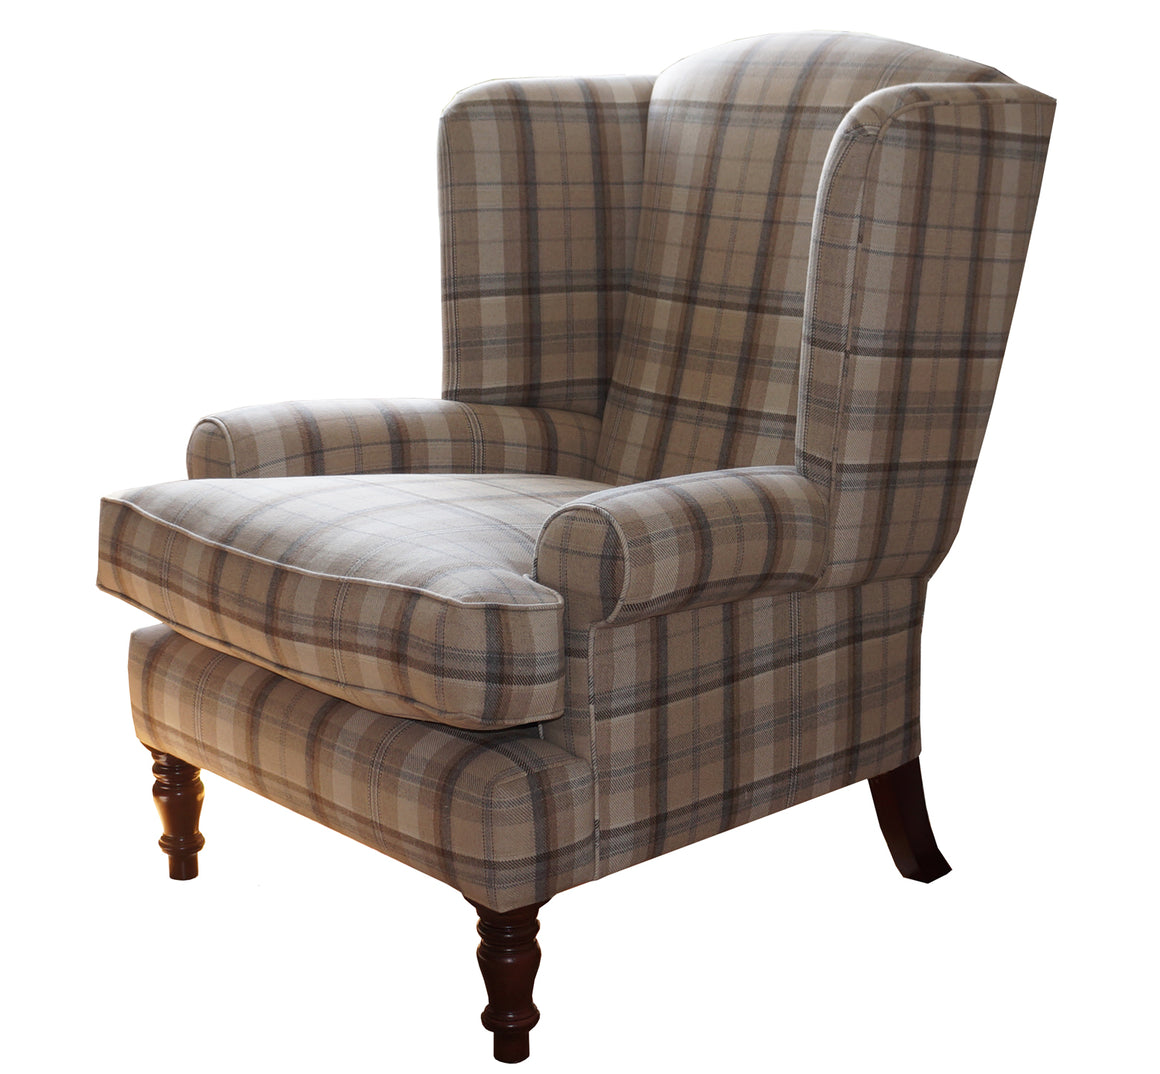 Jodphur Large Wing Chair